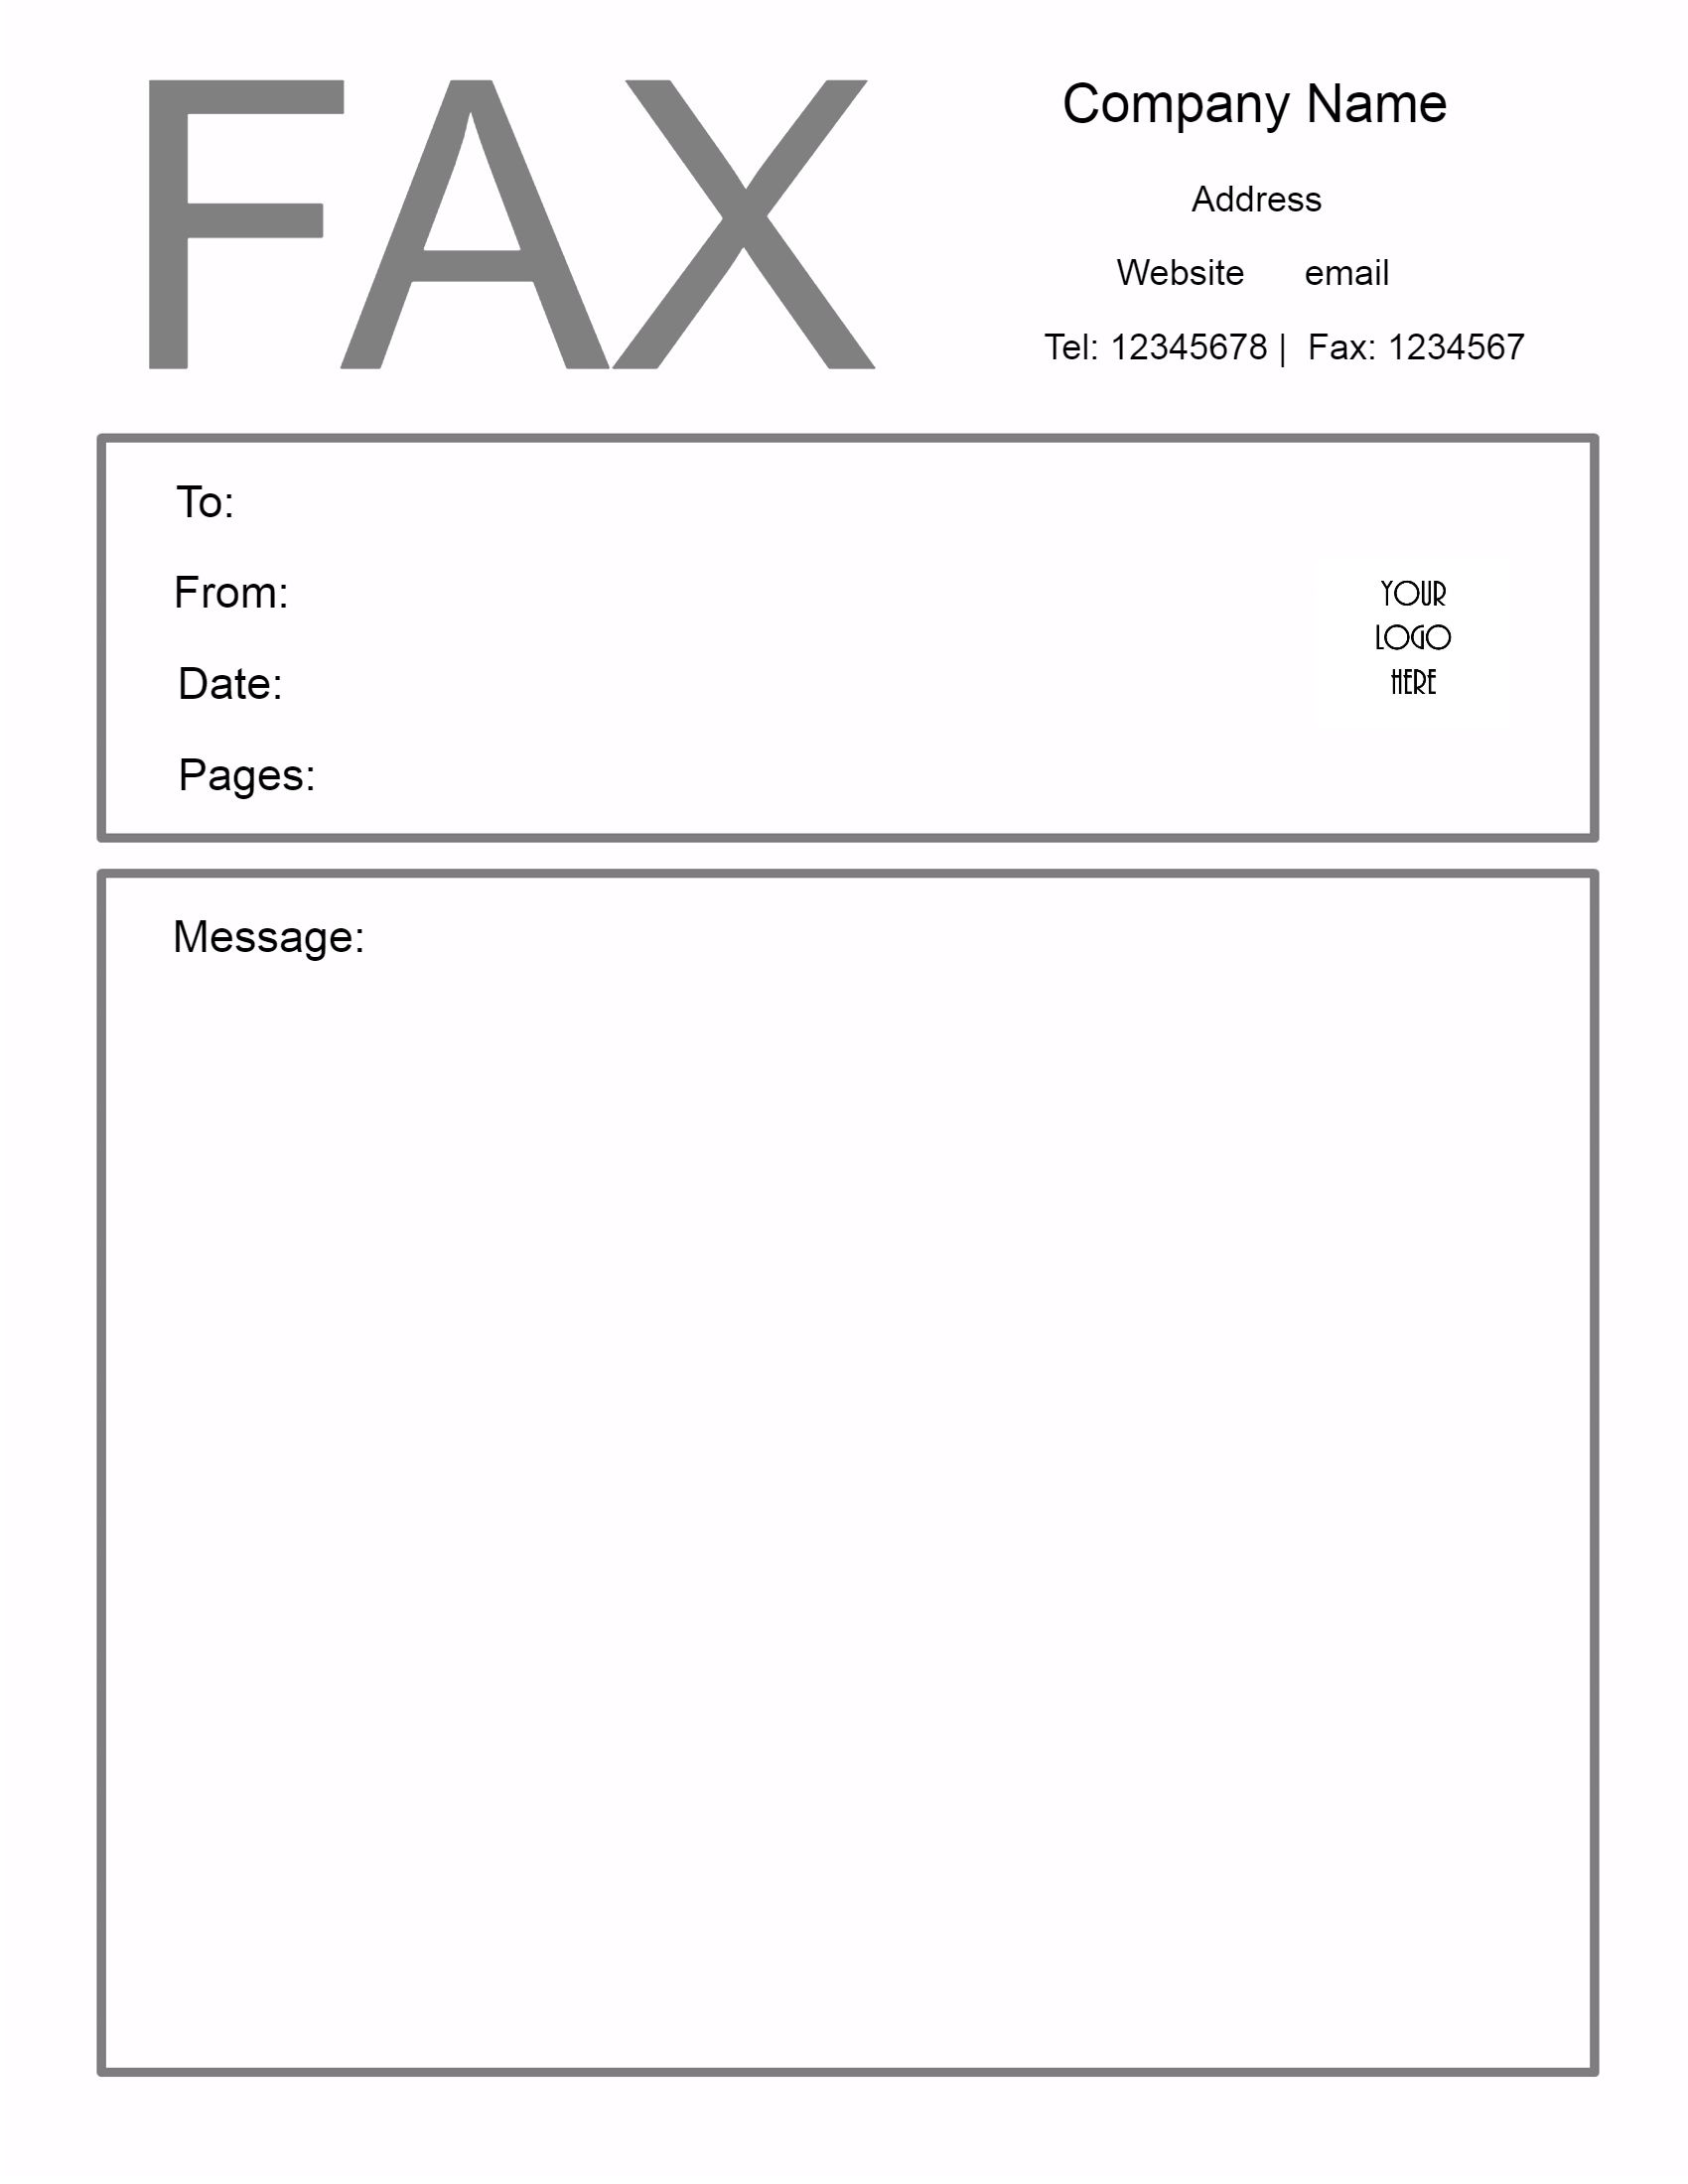 Fax Cover Sheet Template  Fax Template In Word